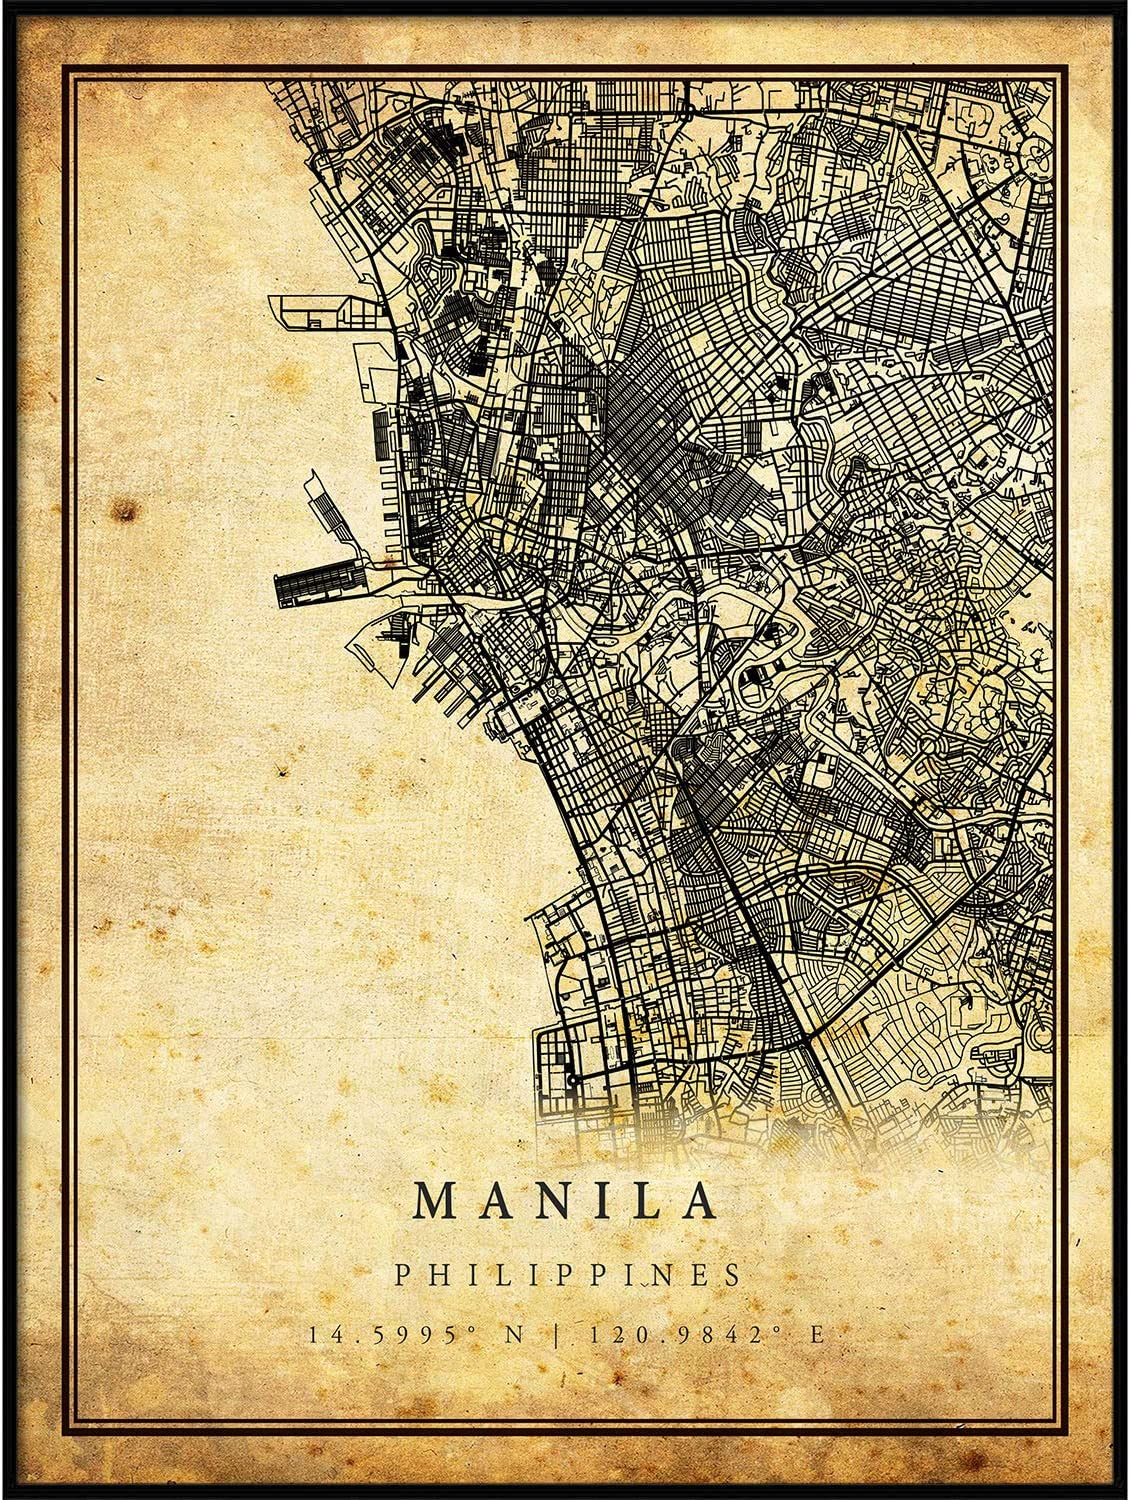 Manila map Vintage Style Poster Print | Old City Artwork Prints | Antique Style Home Decor | Philippines Wall Art Gift | map Painting 11x14